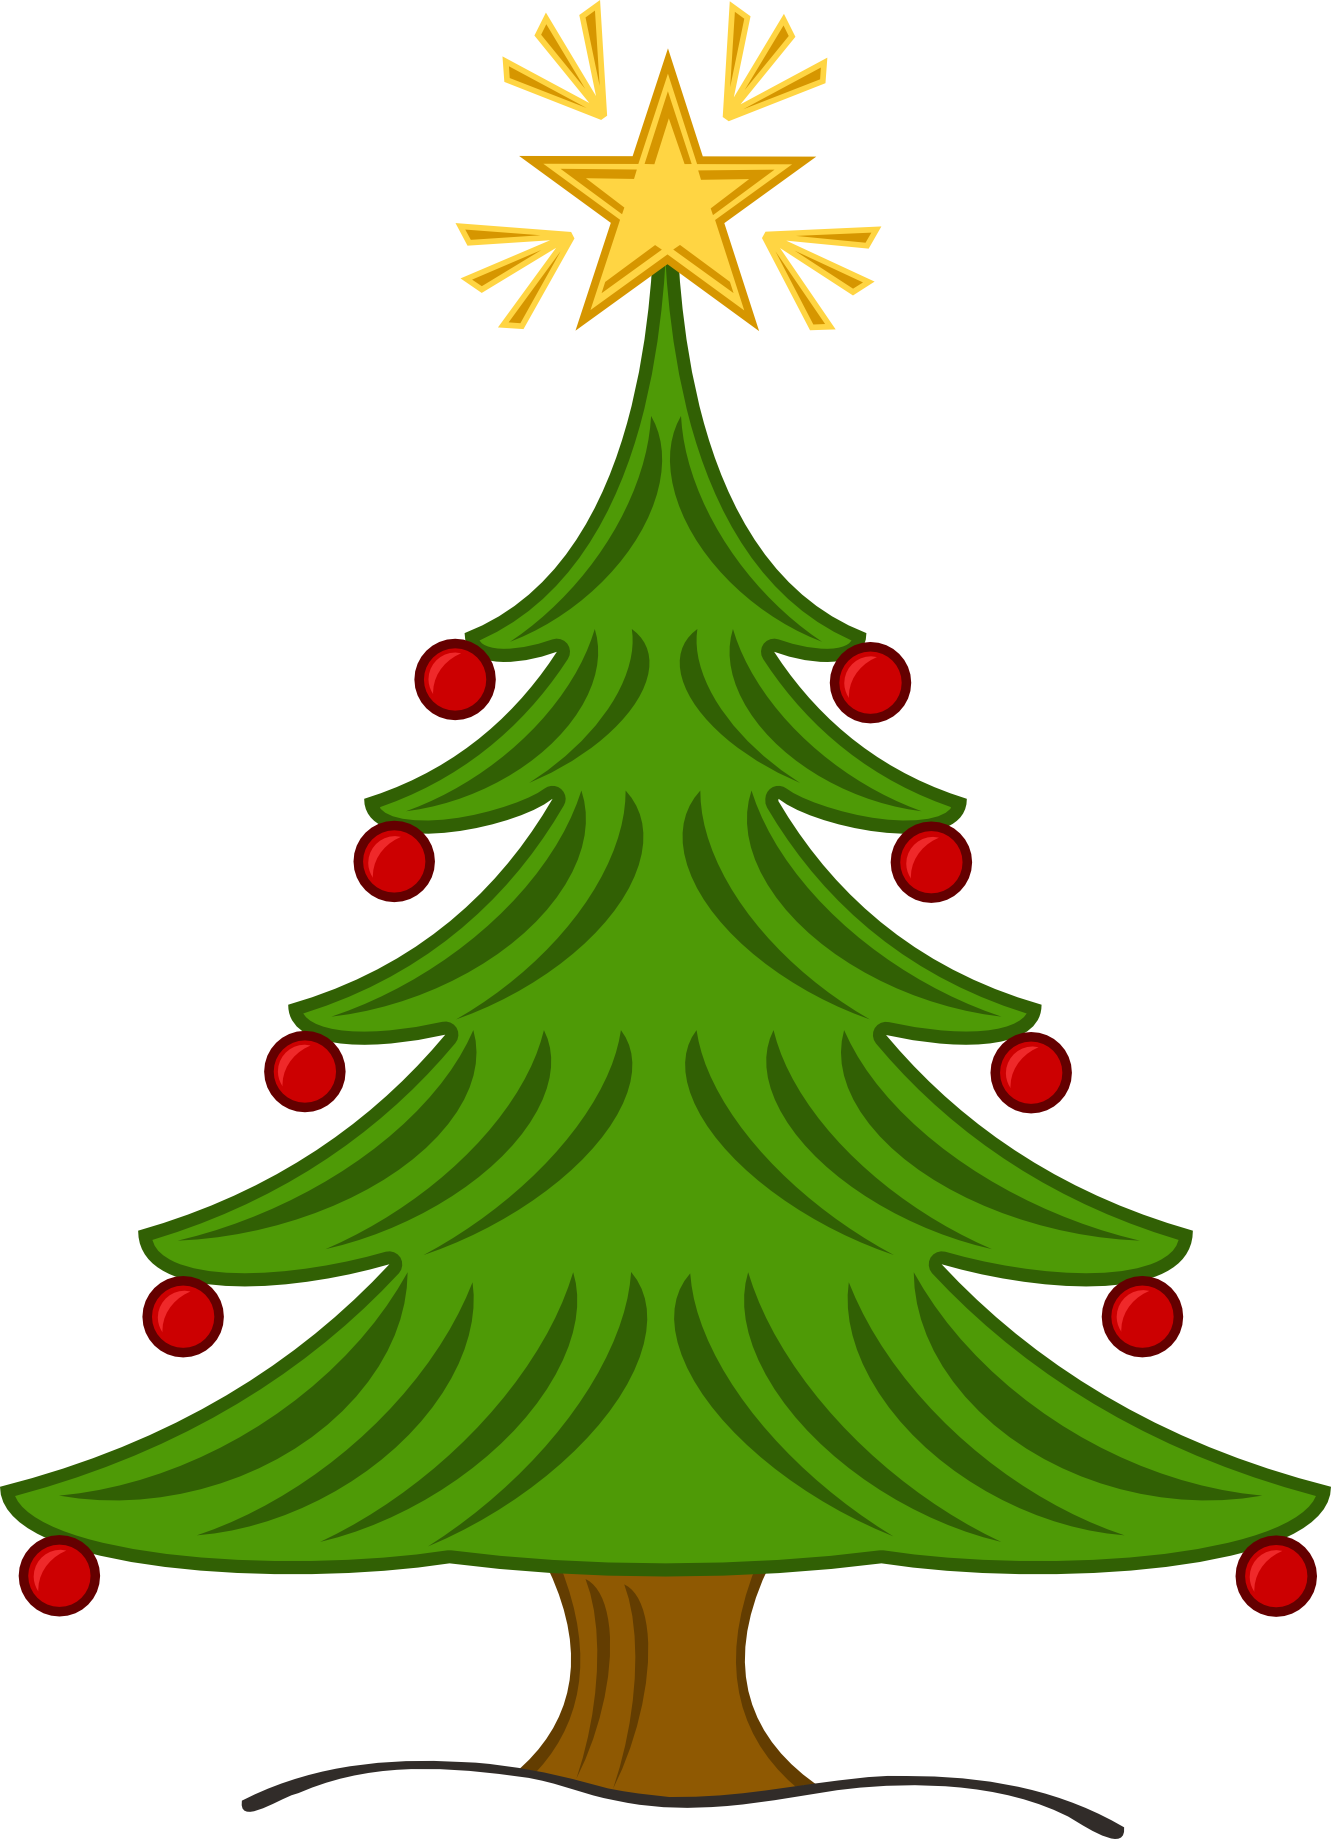 Christmas Tree Clip Art Pictures - ClipArt Best